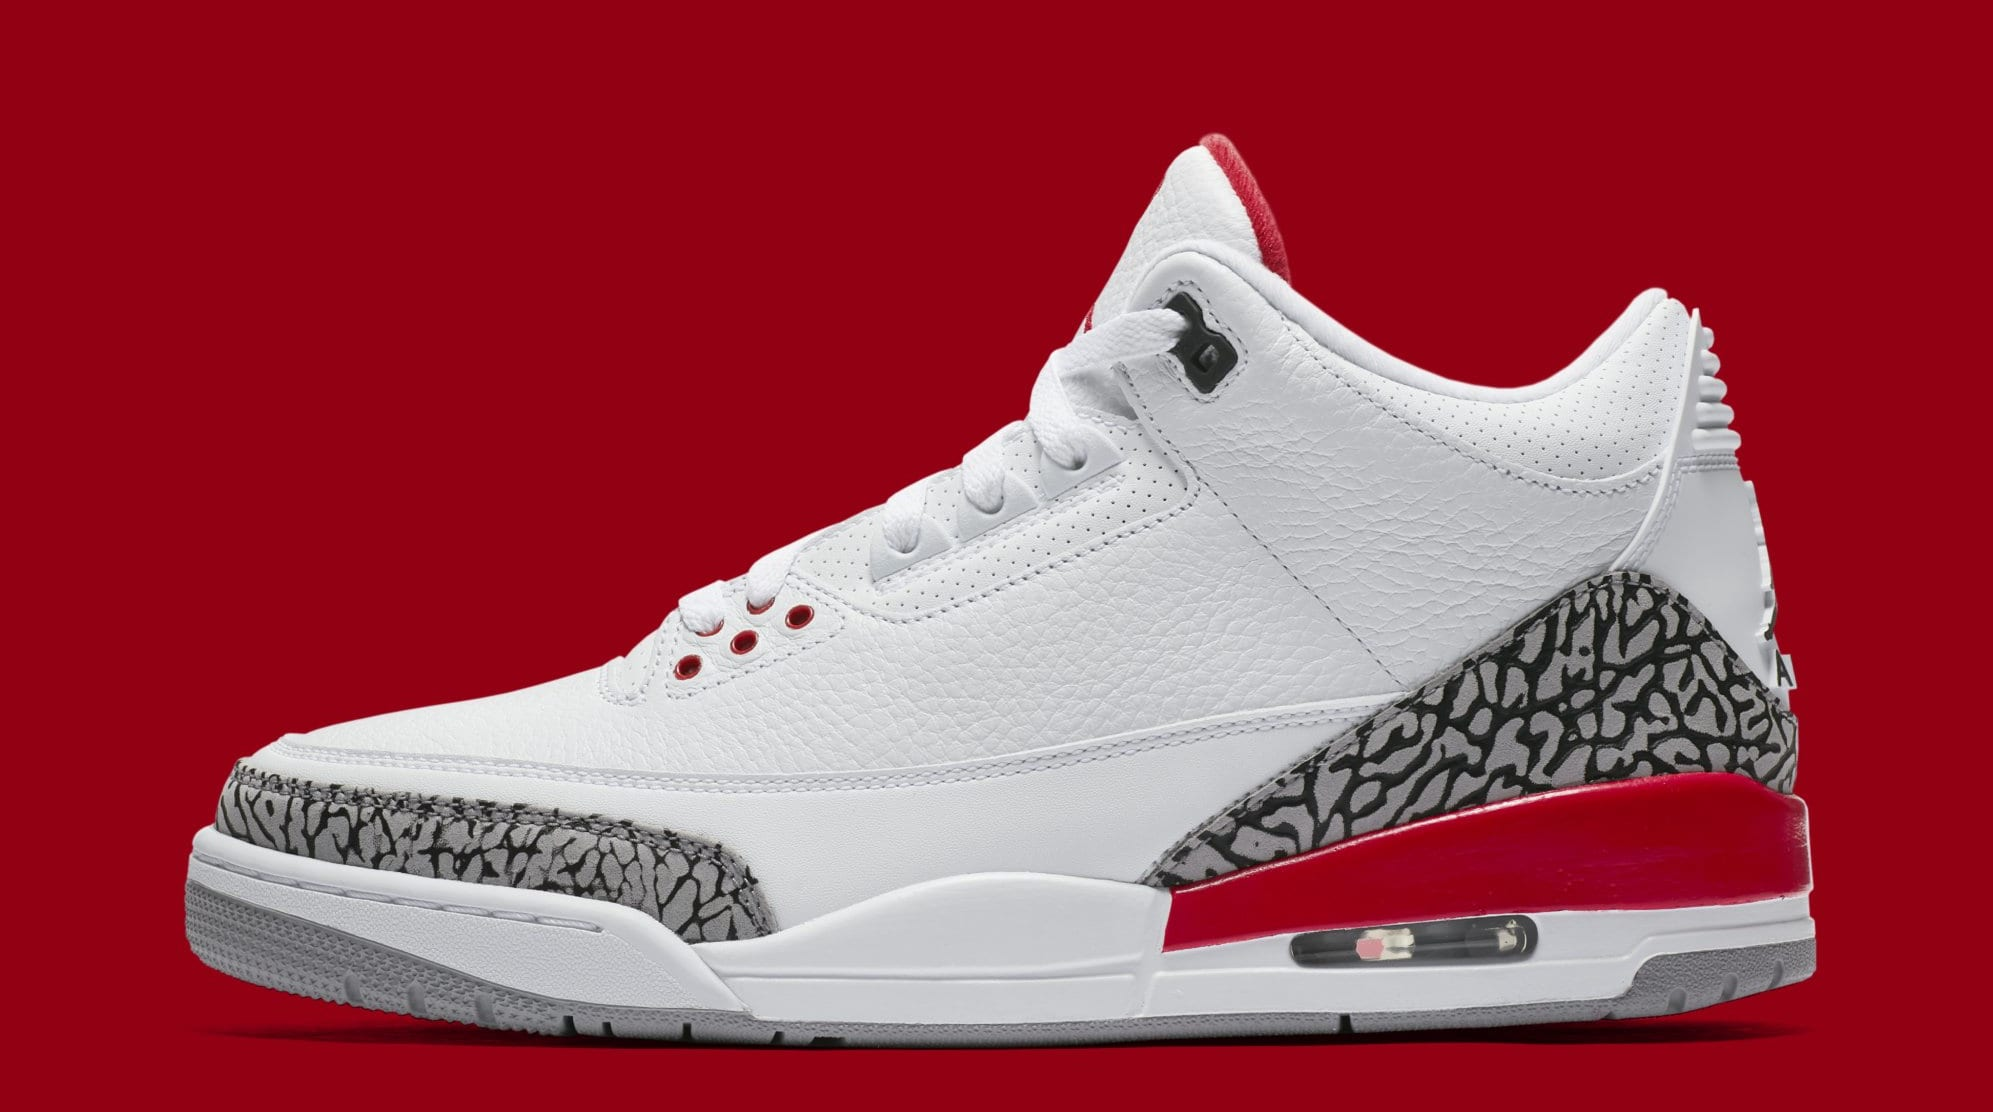 usa the air jordan 3 black cement rumored to re 16409 3b77c fe20393ad